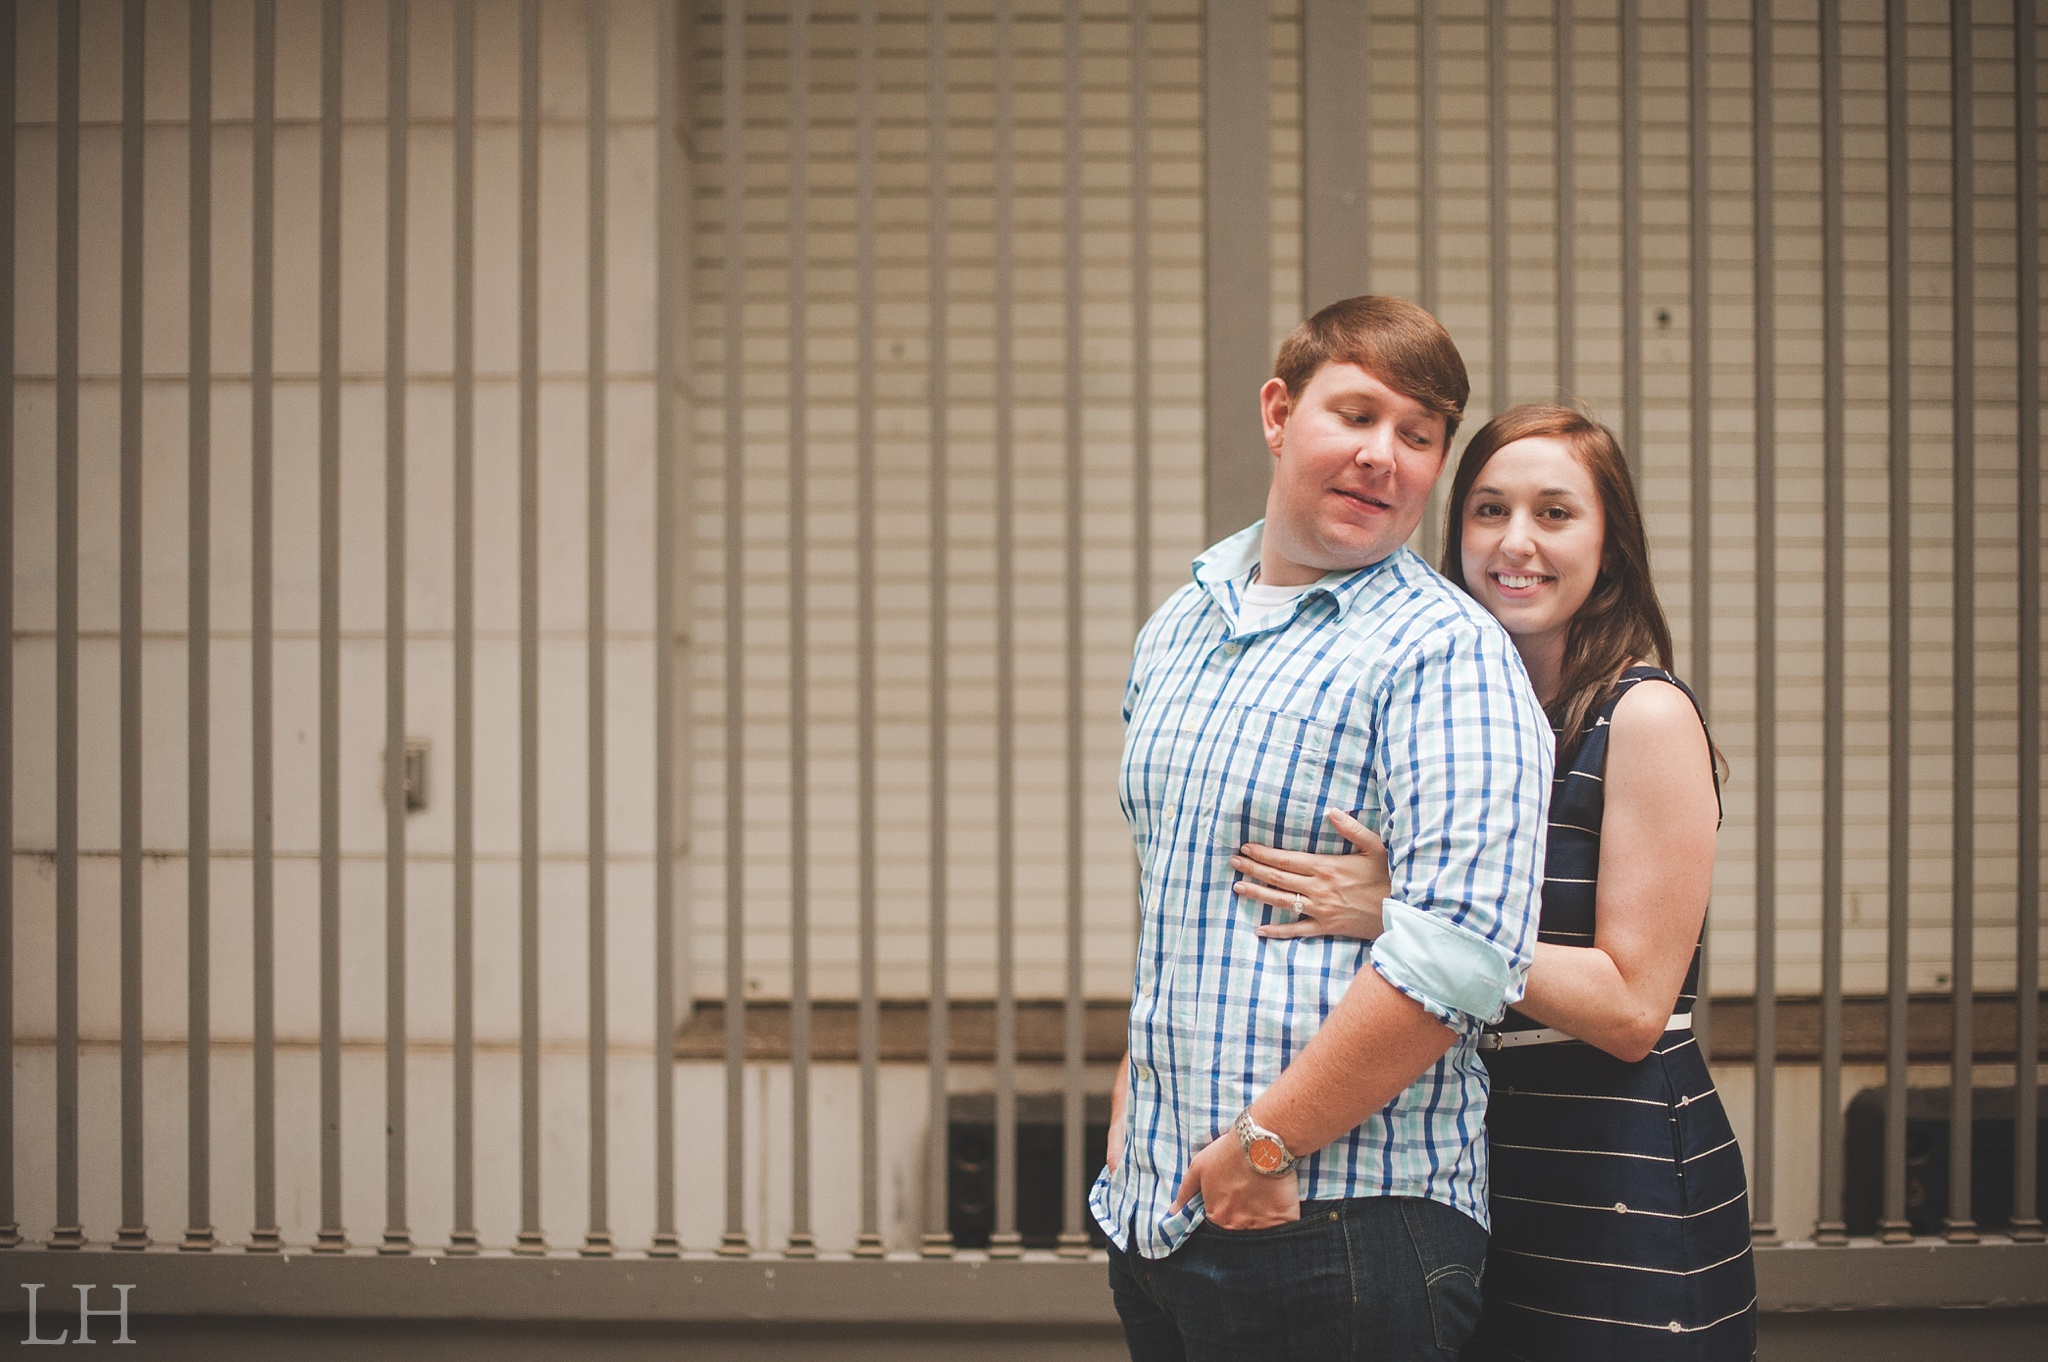 DowntownKnoxvilleEngagementSession108.jpg